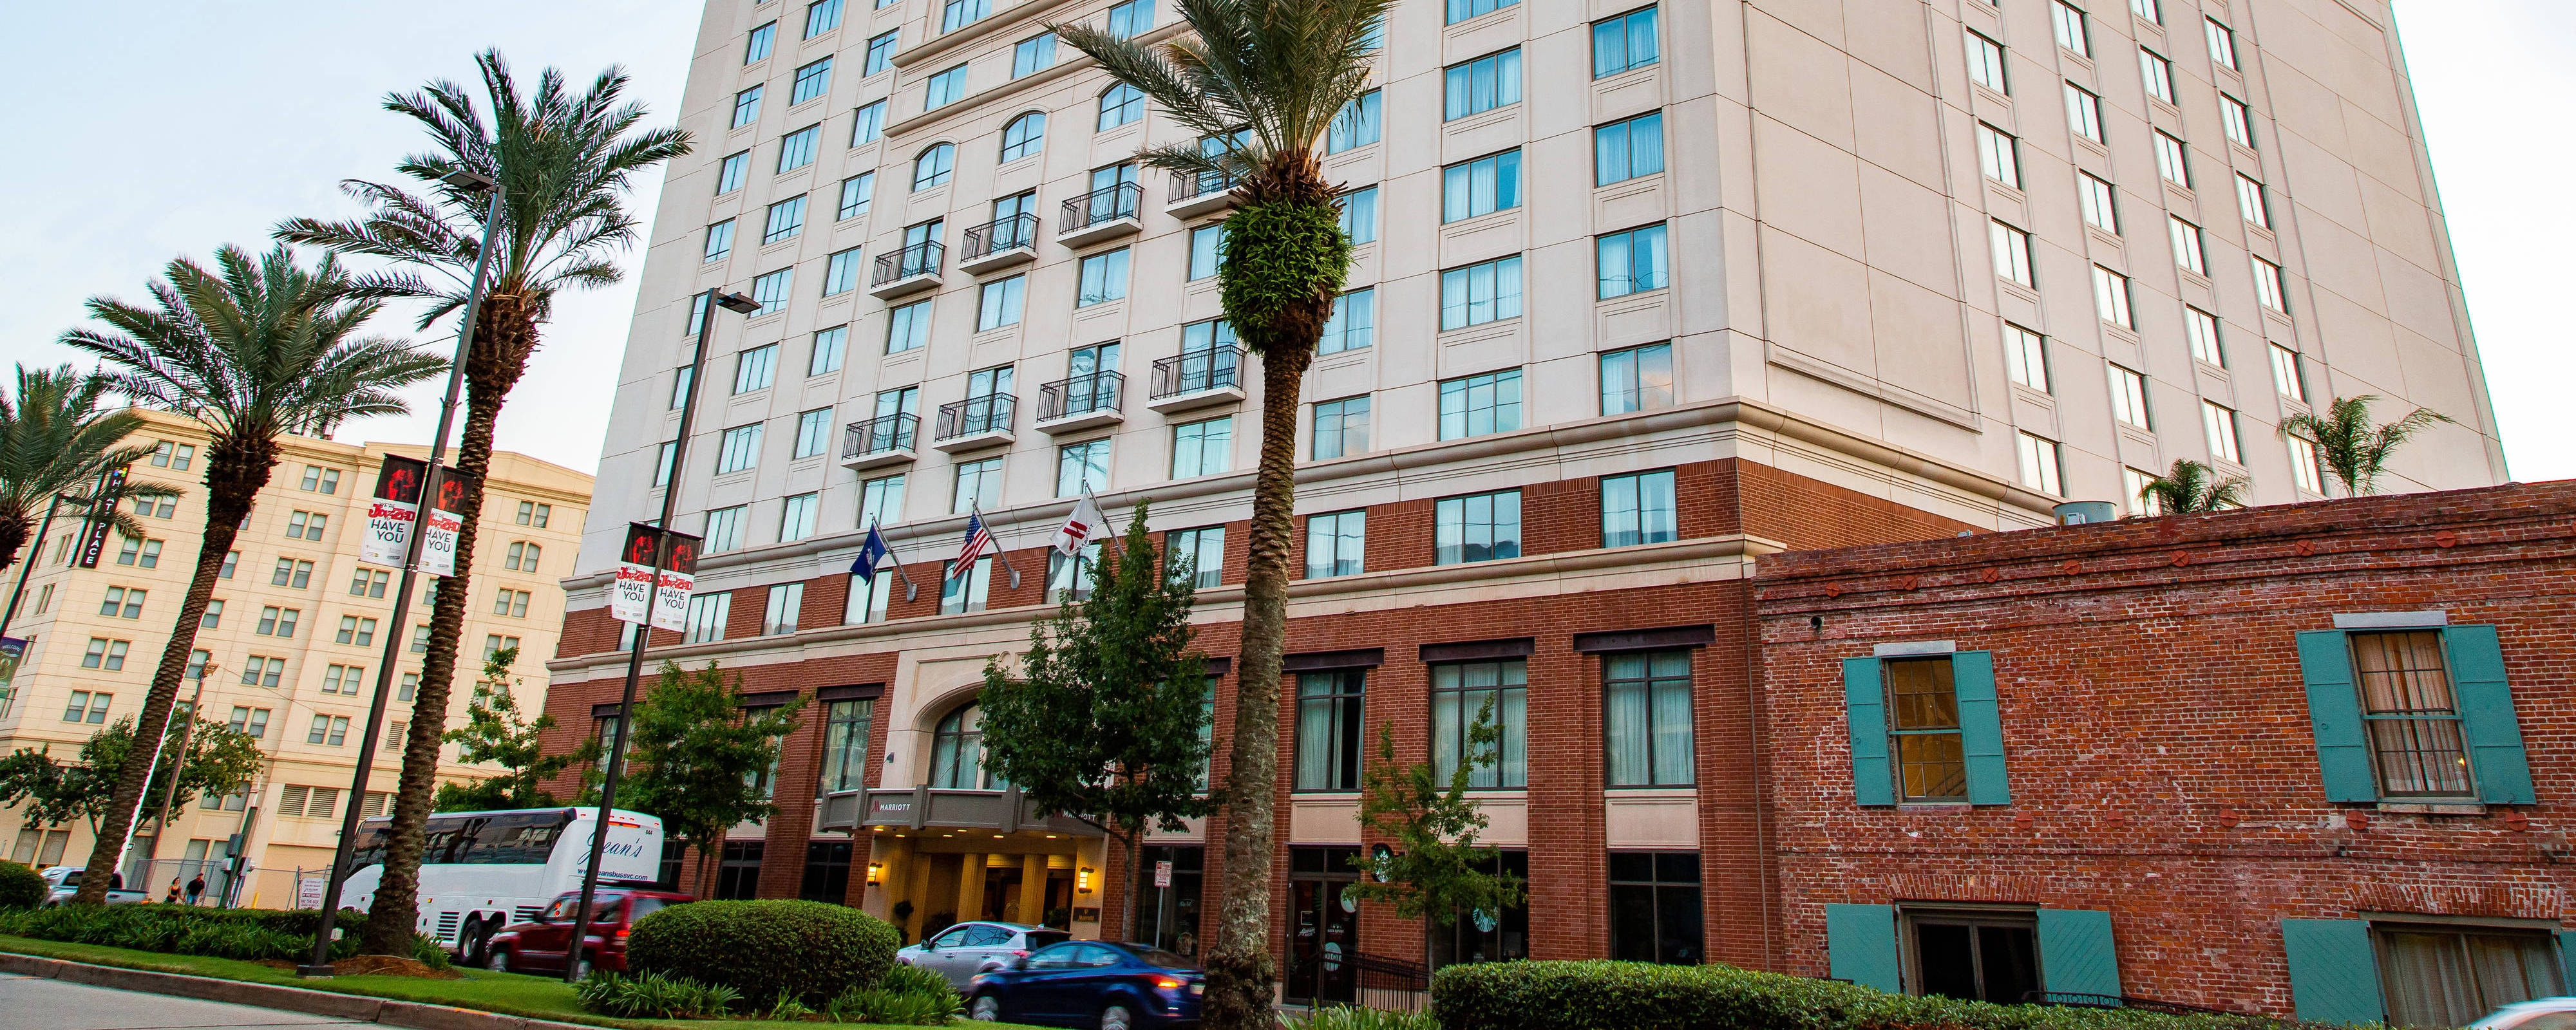 Marriott New Orleans Map.New Orleans Convention Center Hotel New Orleans Marriott At